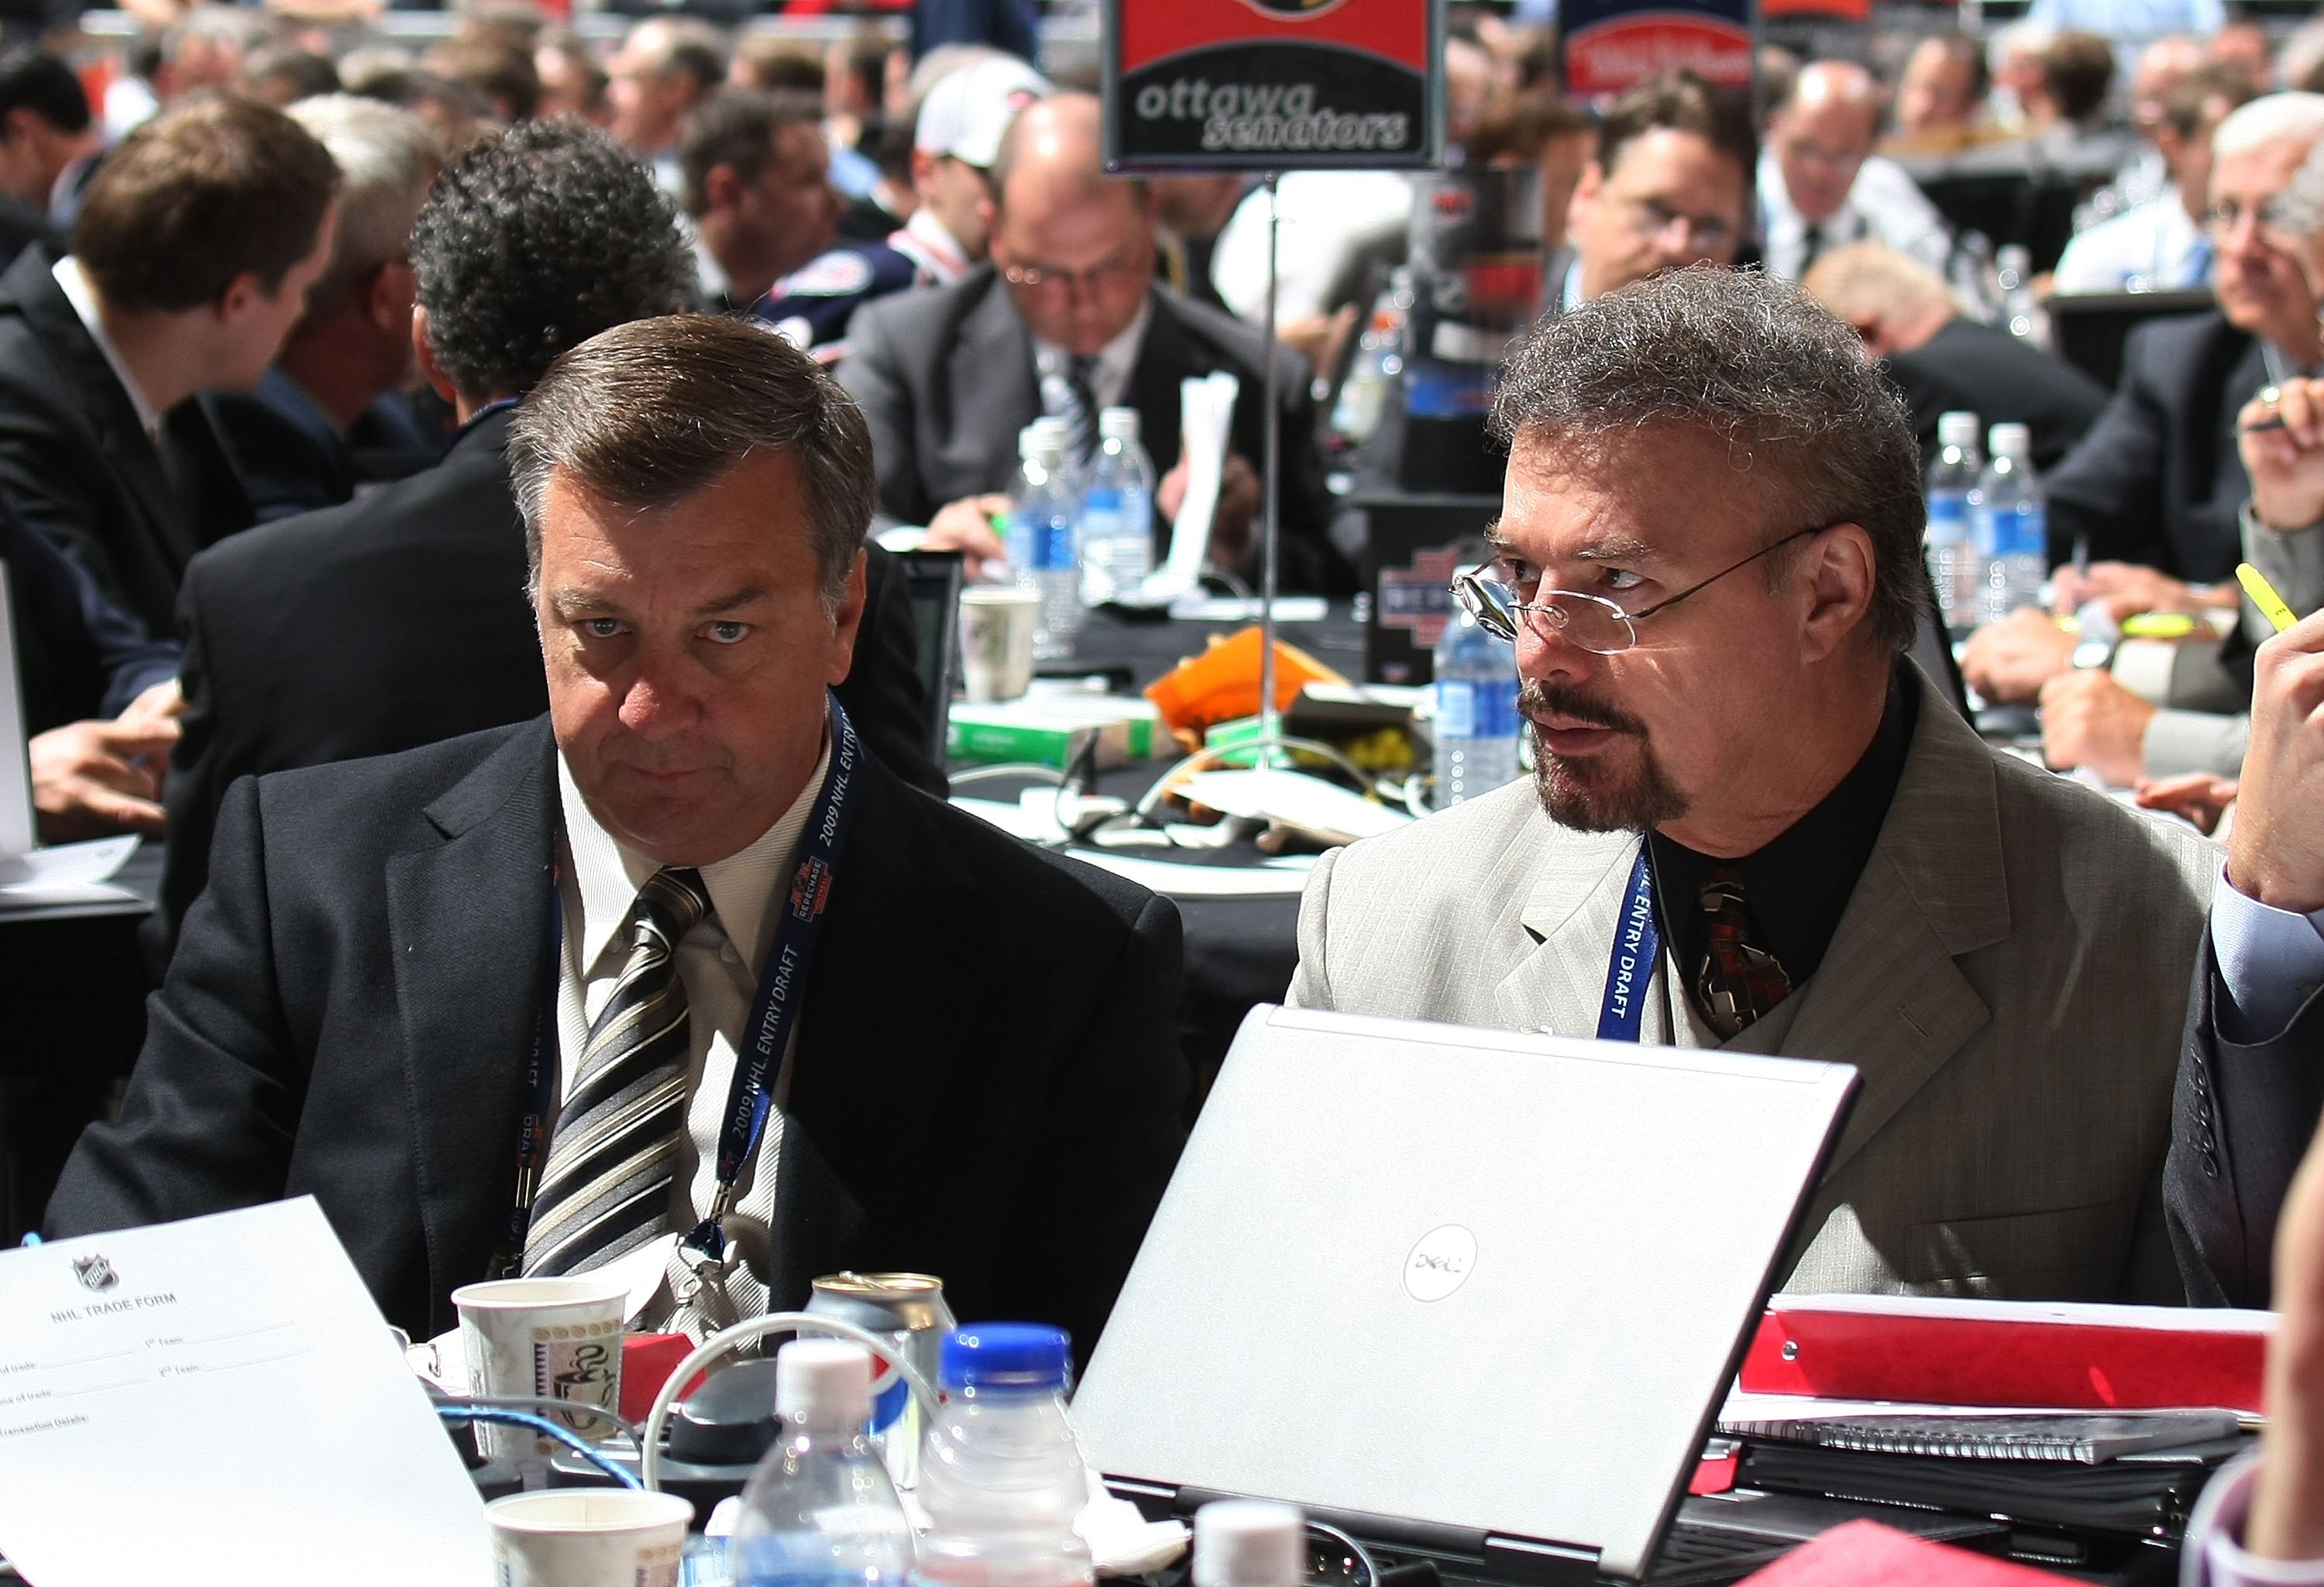 MONTREAL, QC - JUNE 27: Don Waddell and Rick Dudley of the Atlanta Thrashers photographed during the 2009 NHL Entry Draft at the Bell Centre on June 27, 2009 in Montreal, Quebec, Canada.  (Photo by Bruce Bennett/Getty Images)